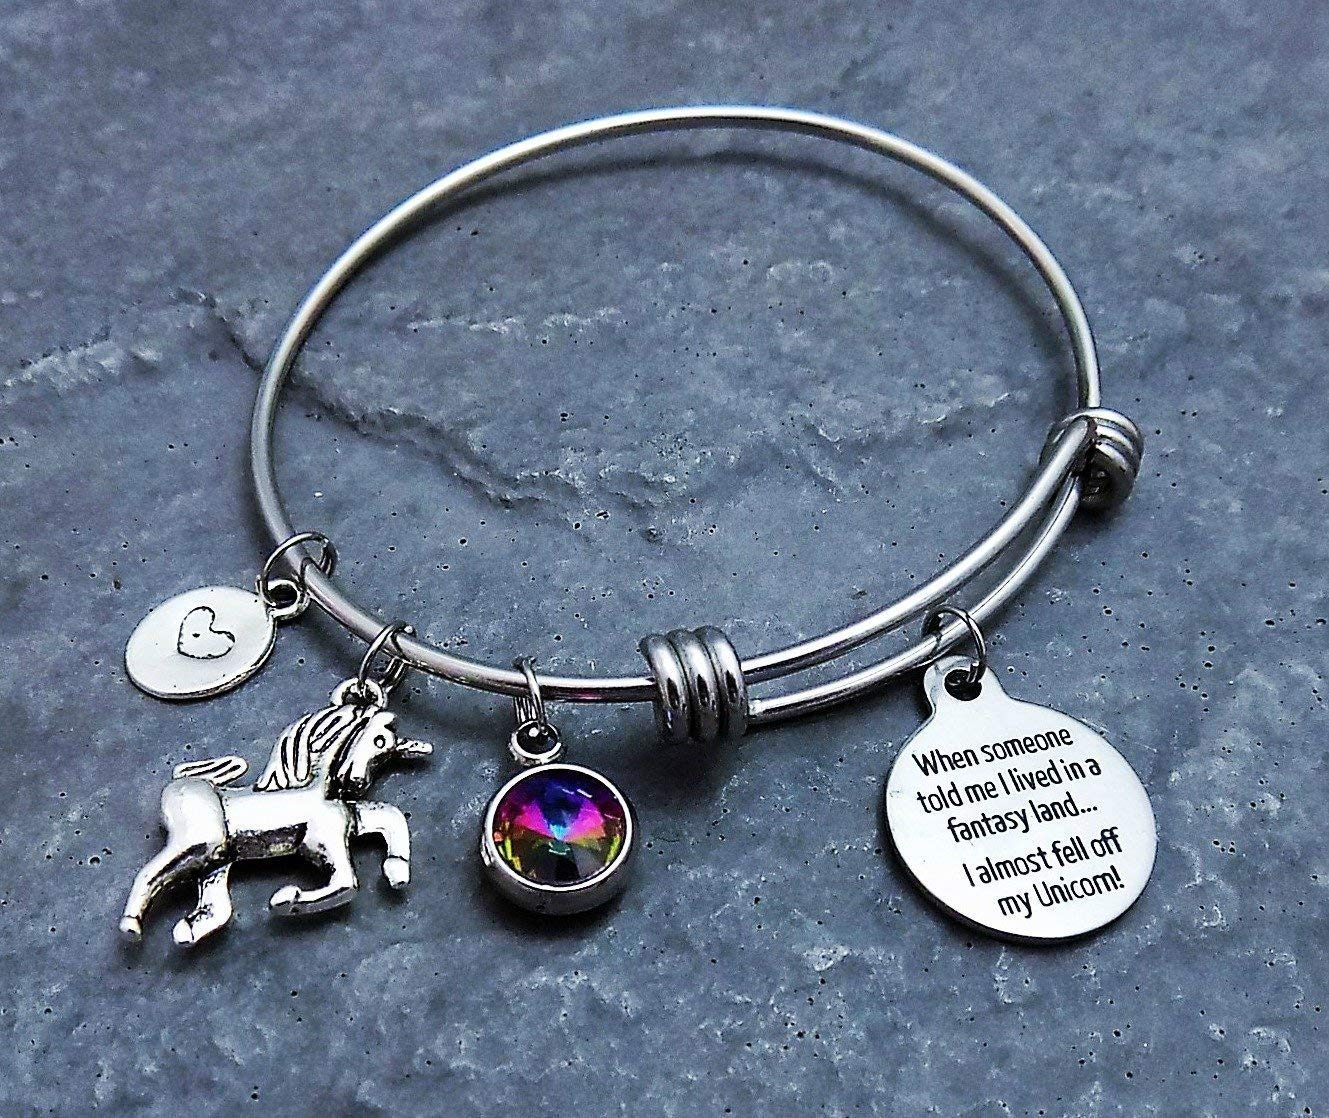 Magical Unicorn Charm Bracelet with Rainbow Colored Pendant Stainless Steel Expandable Bangle 3